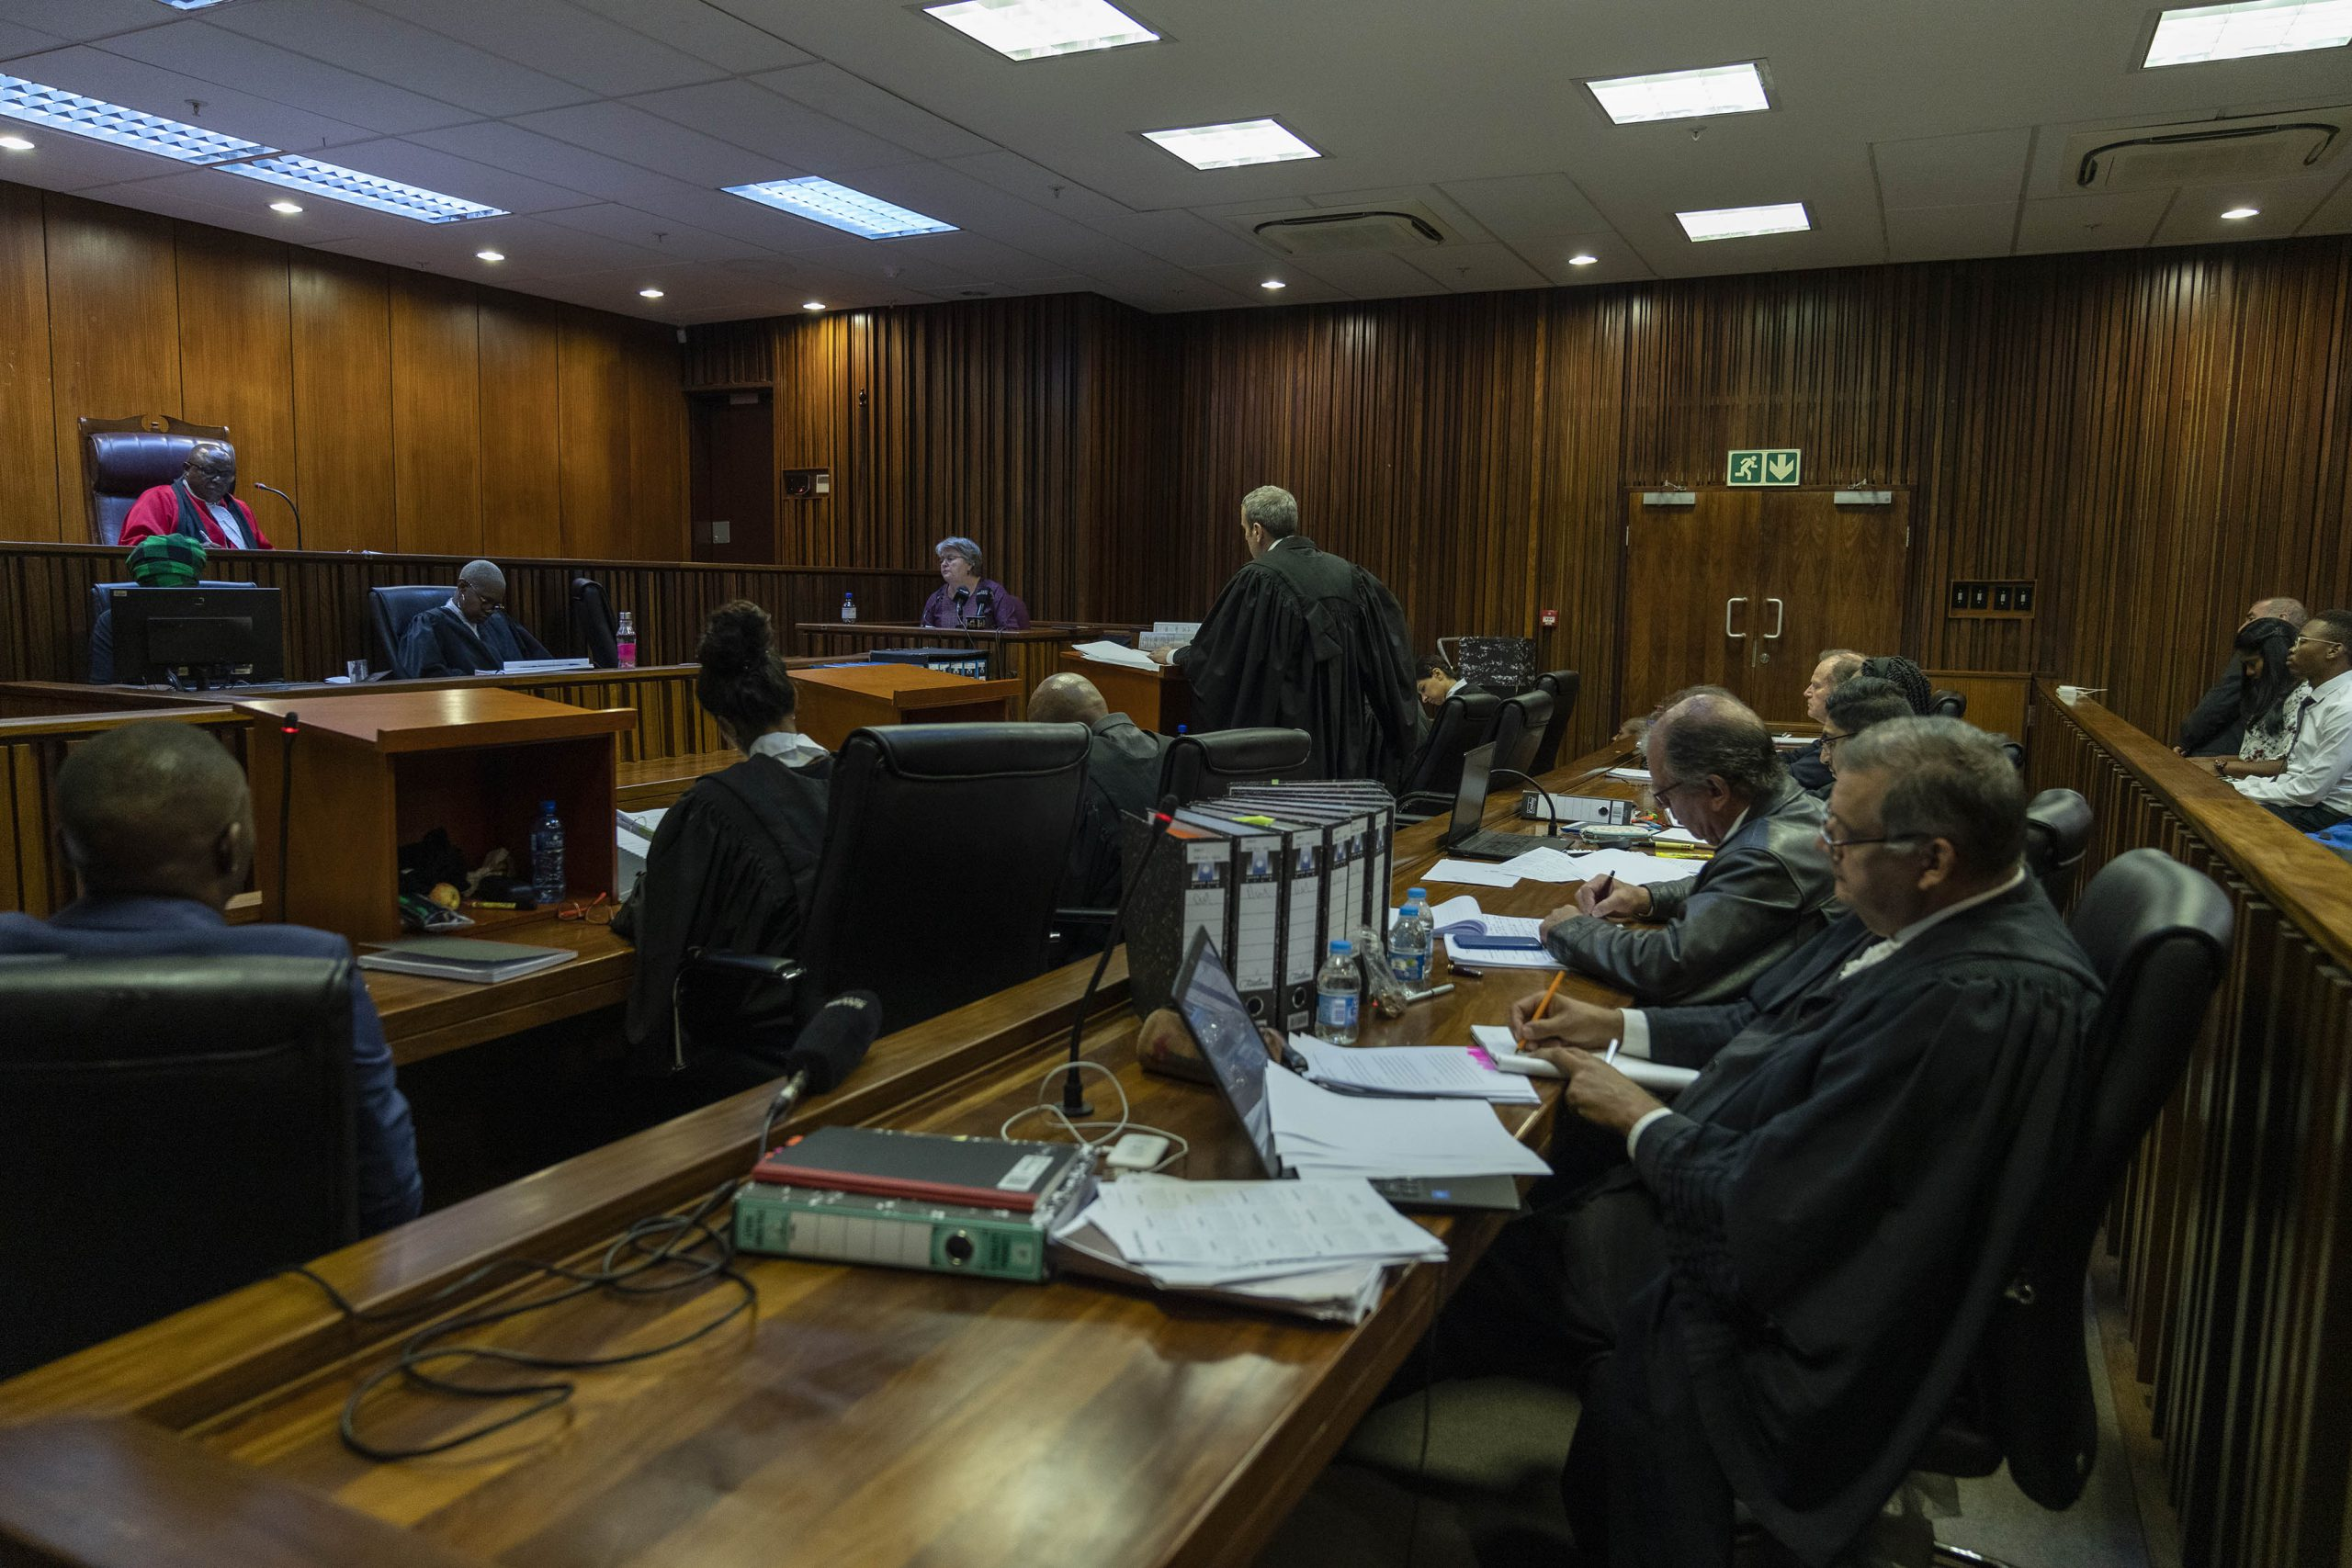 29 January 2020: A former minister of public enterprises and minister of health, Barbara Hogan gave evidence at the reopened inquest into Neil Aggett's death at the Johannesburg high court.